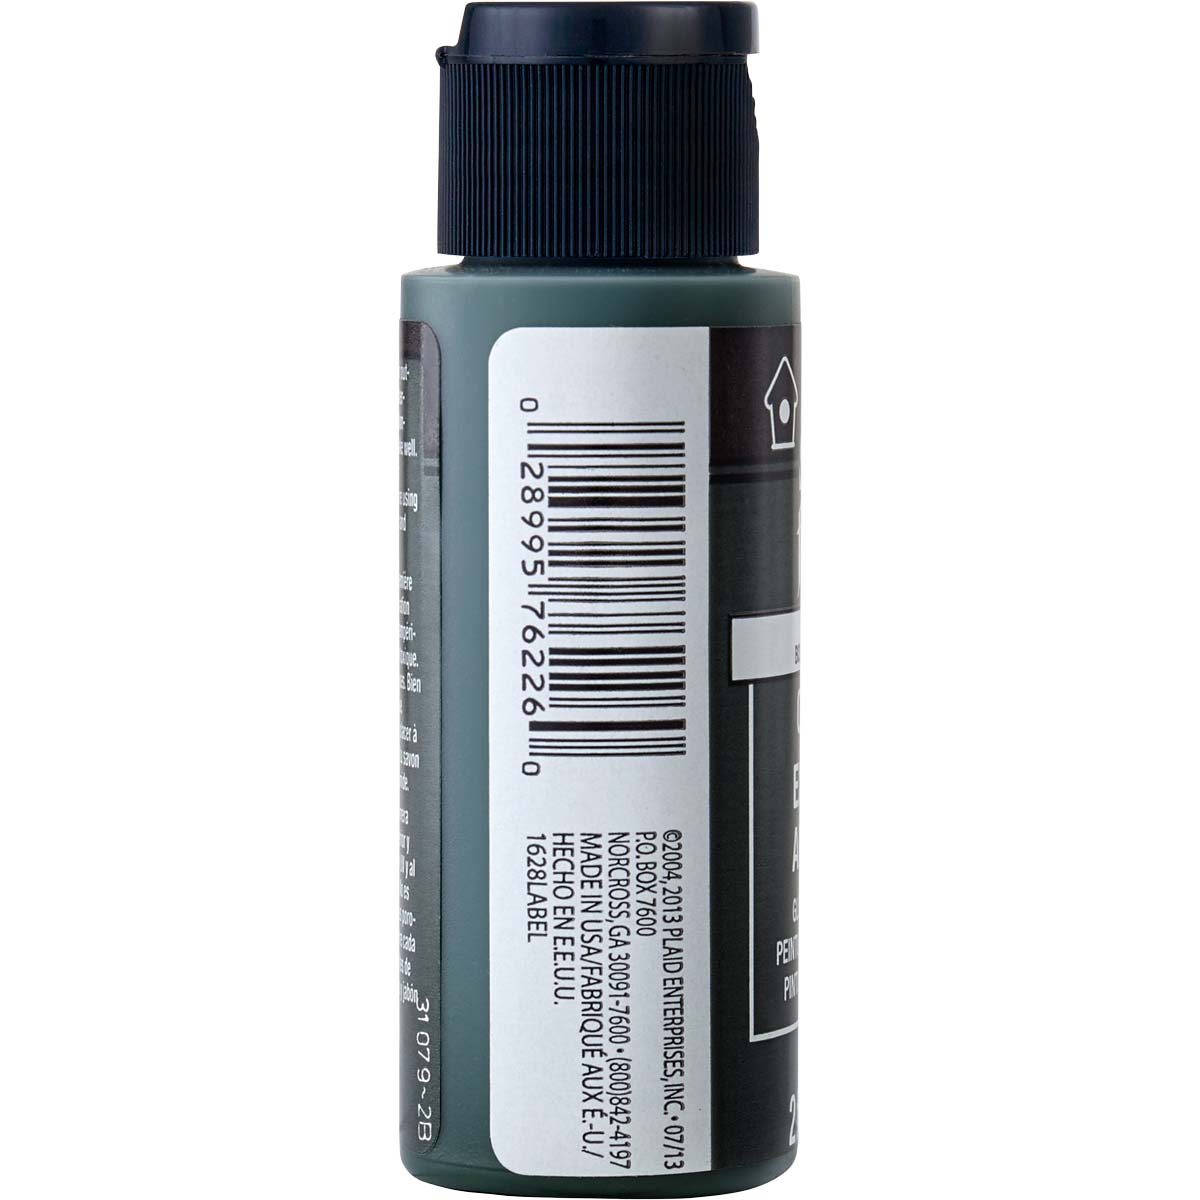 FolkArt ® Outdoor™ Acrylic Colors - Thicket, 2 oz. - 1628